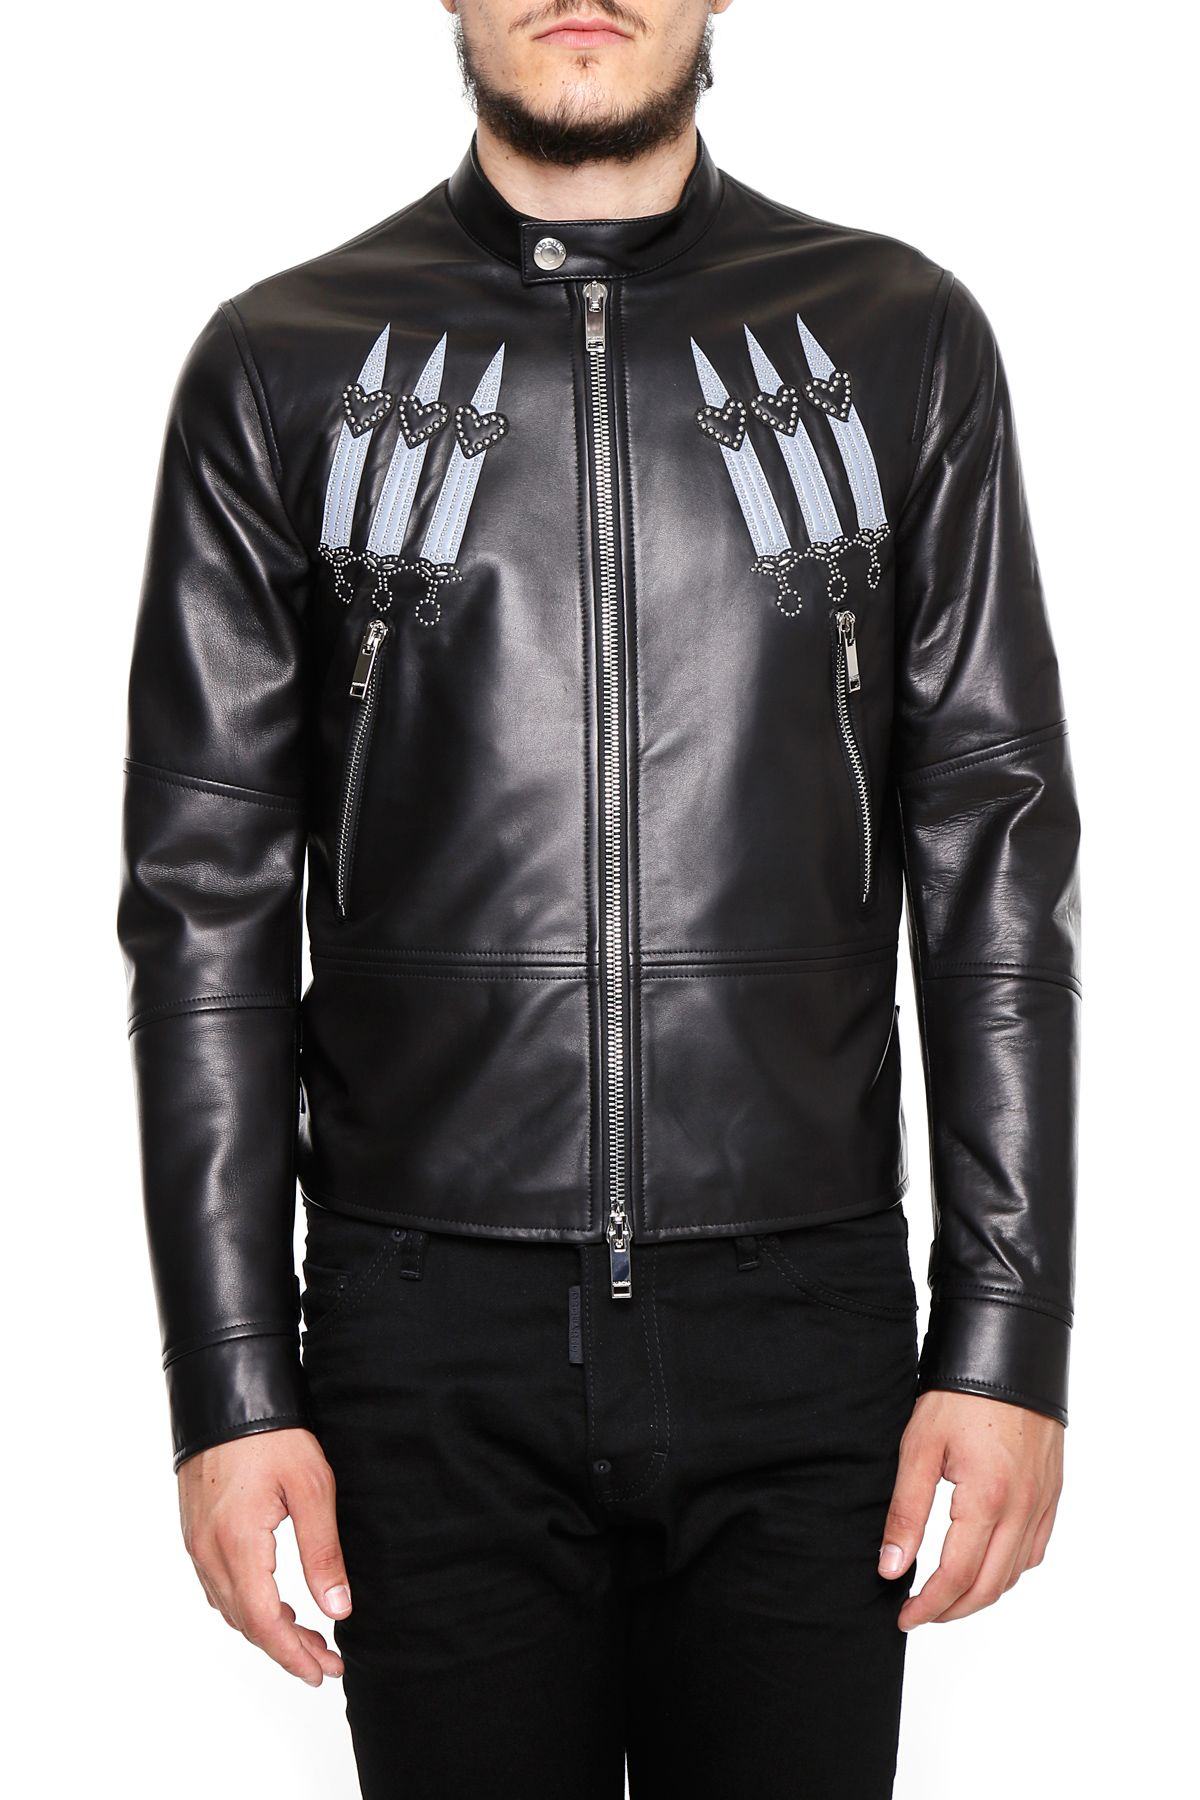 Loveblade Leather Jacket